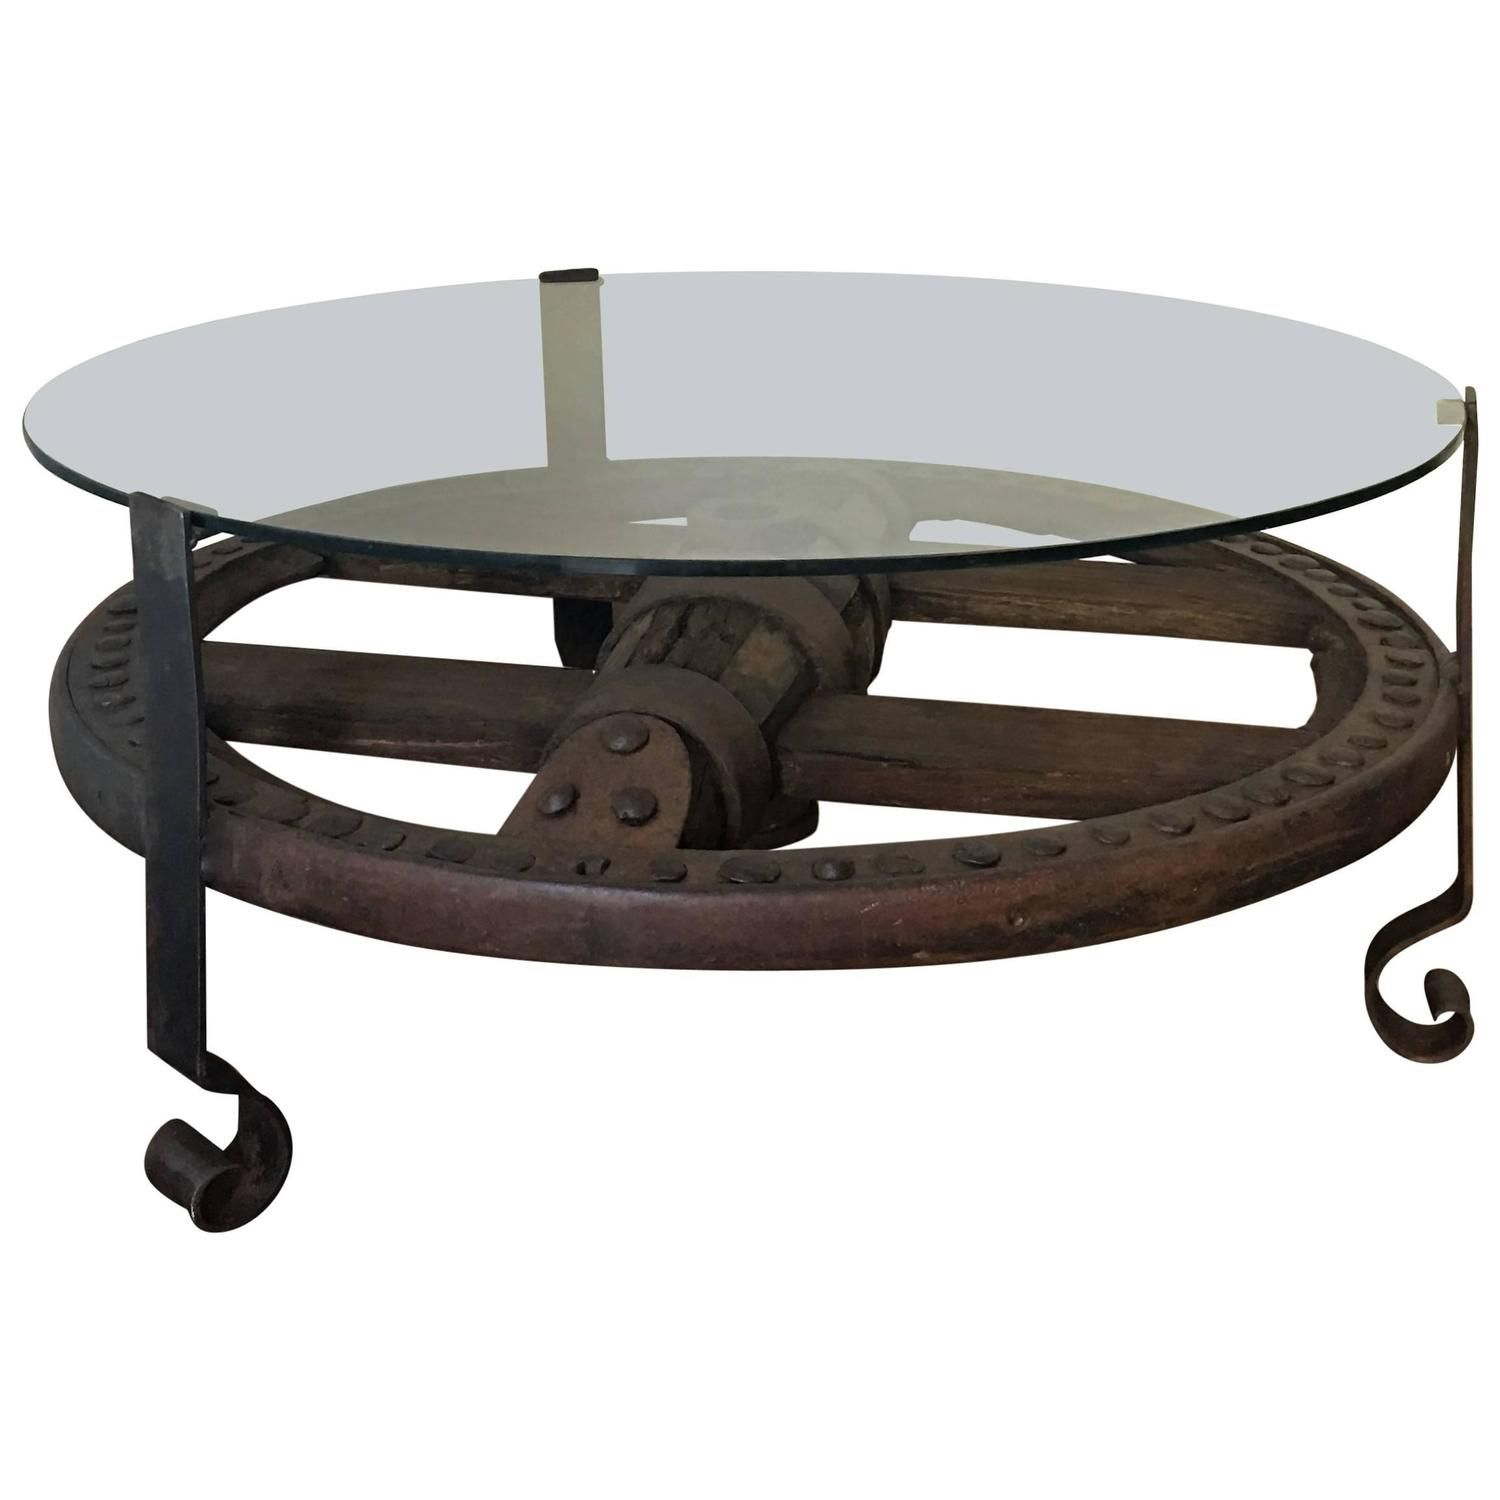 Glass Top Wooden Wagon Wheel Indutrial Accent Table - See